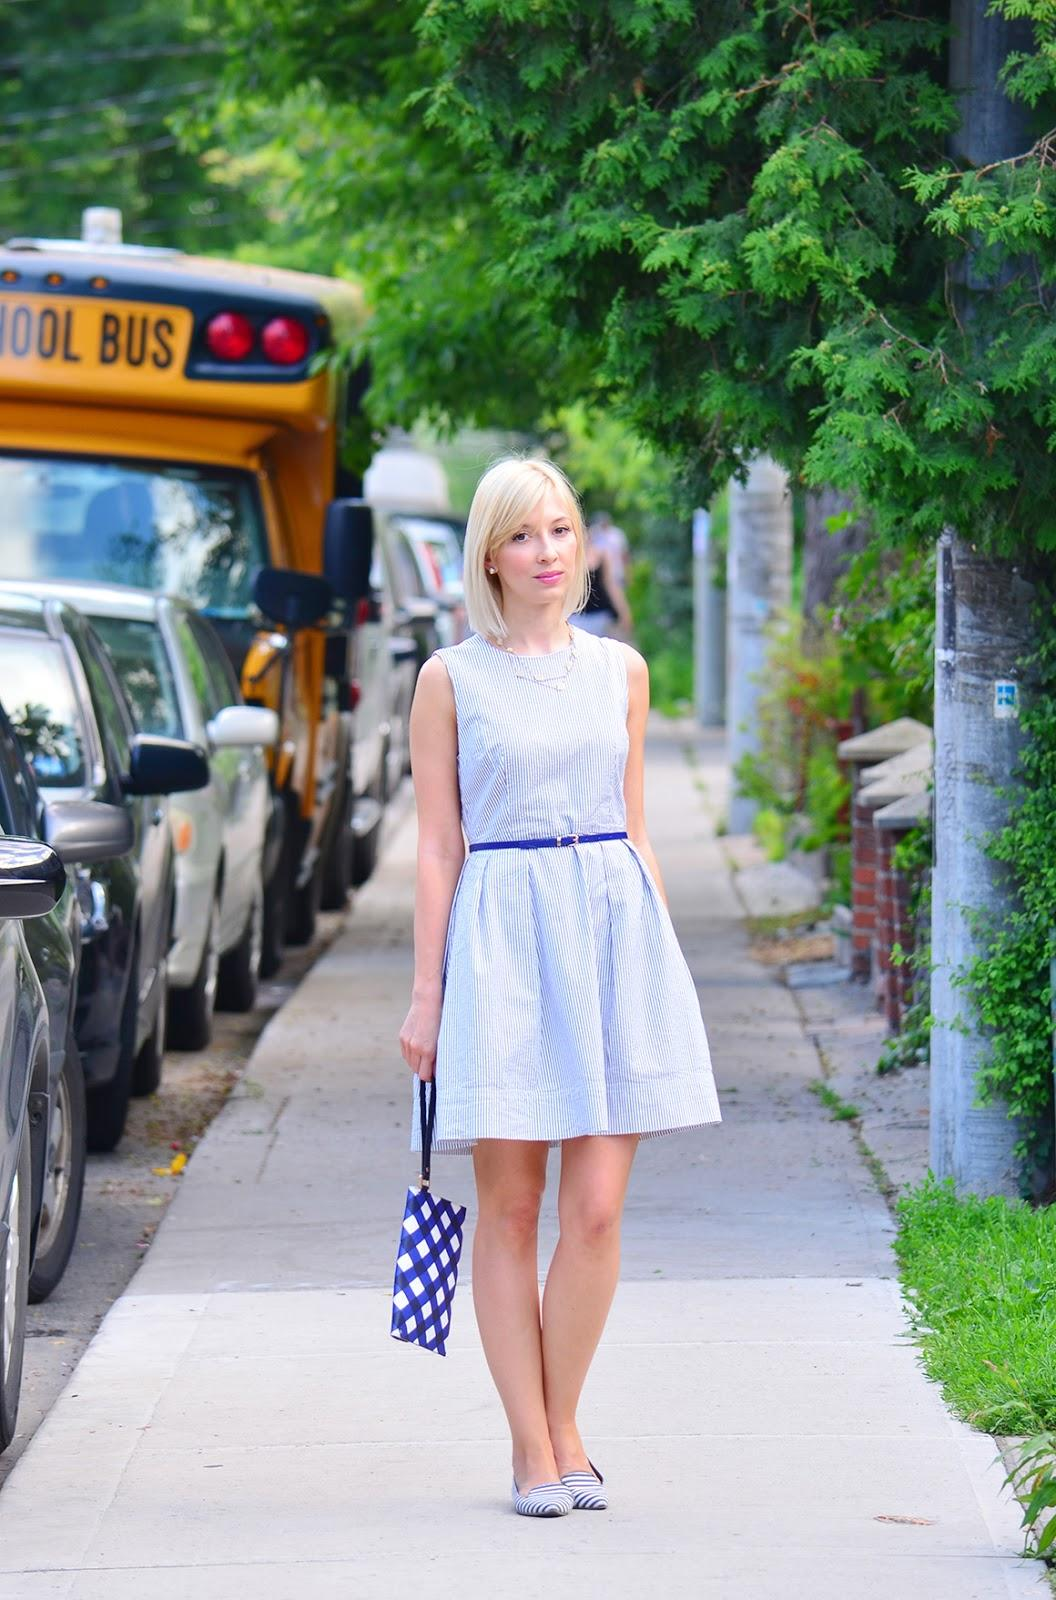 Style, ootd, Gap, Kate Spade, Banana Republic, seersucker dress, flare dress, dress style, seersucker, fit & flare dress, gap dress, aline dress